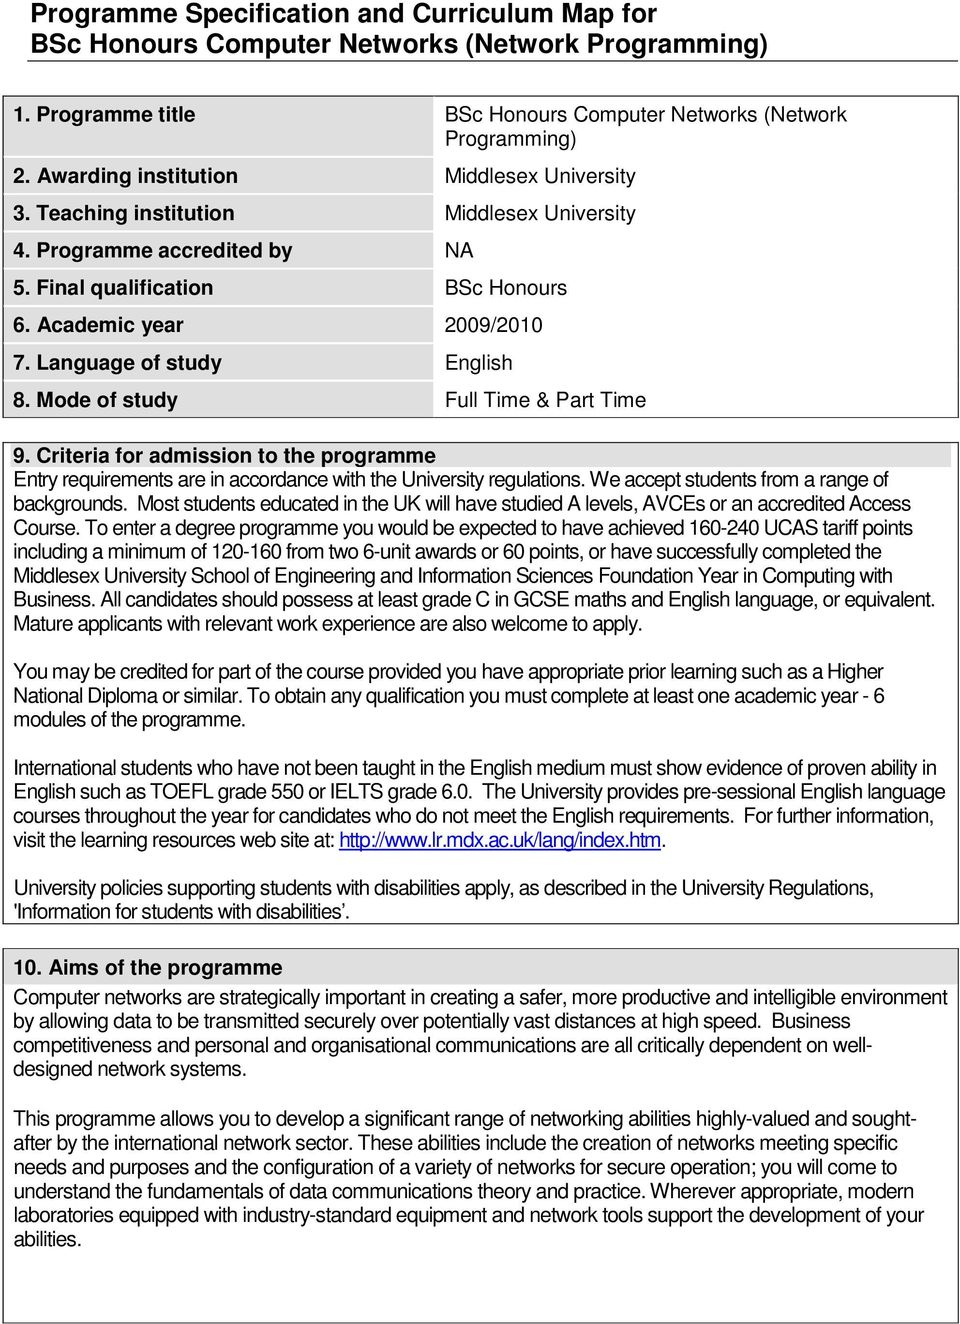 Language of study English 8. Mode of study Full Time & Part Time 9. Criteria for admission to the programme Entry requirements are in accordance with the University regulations.